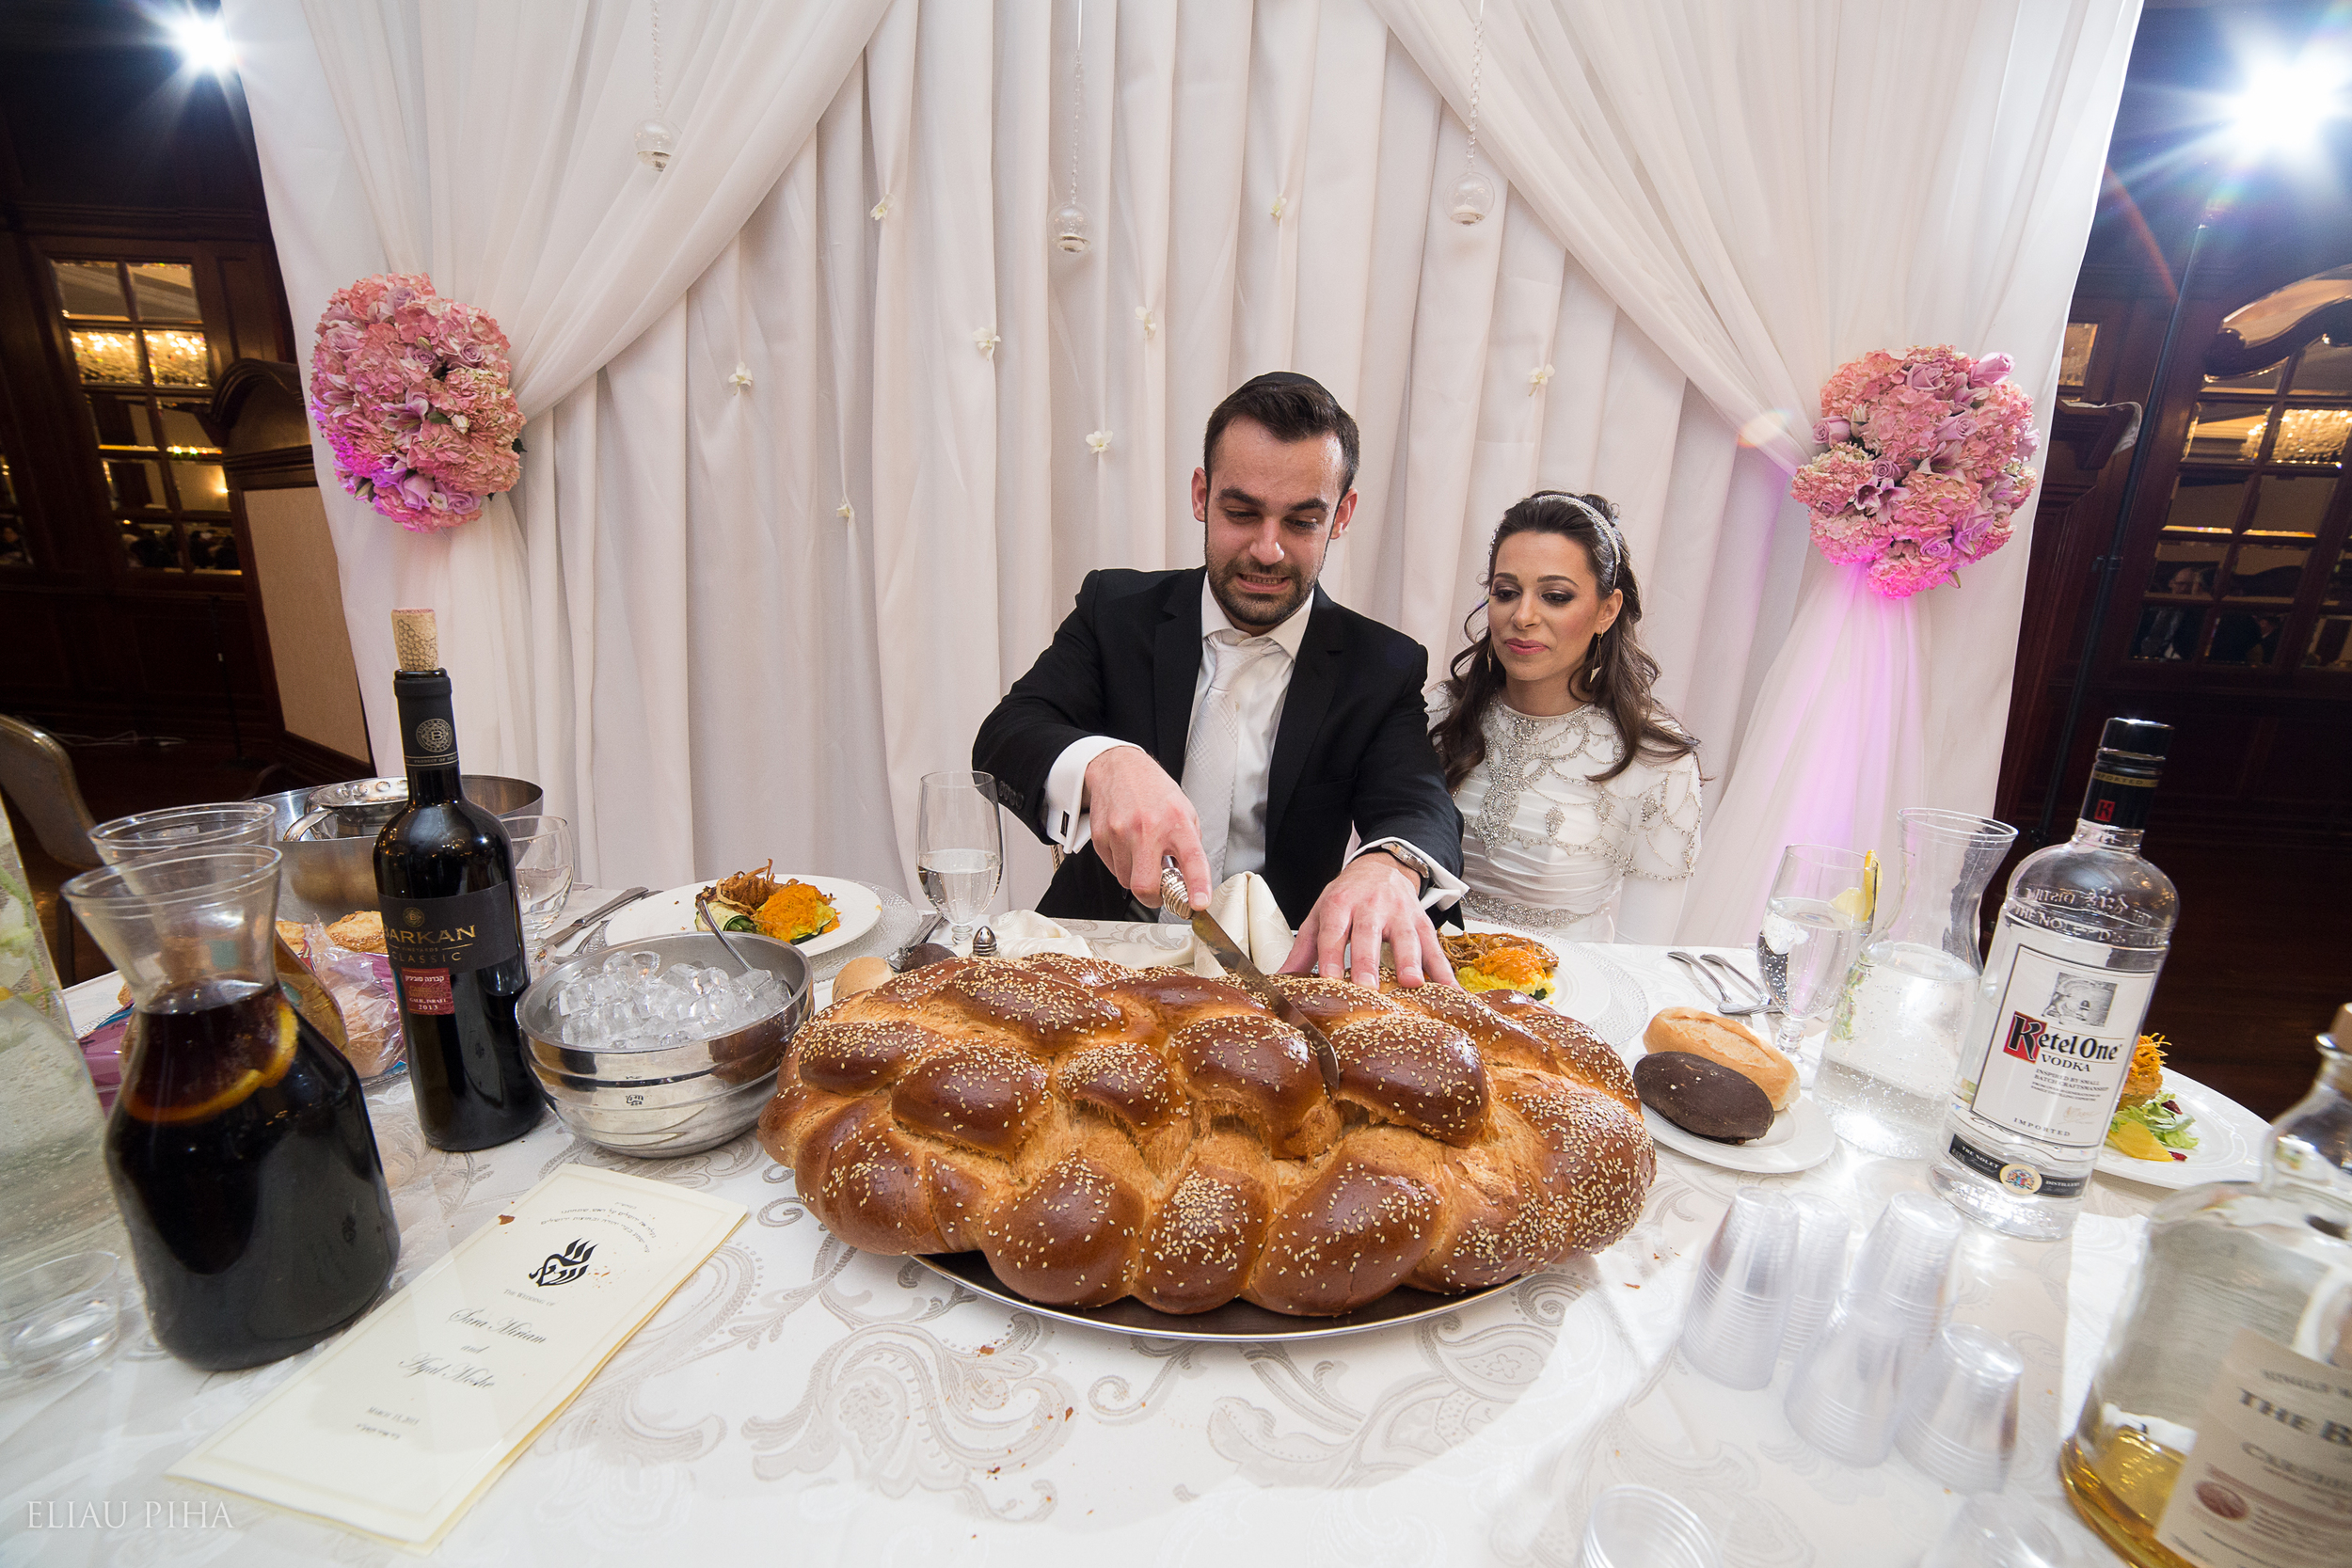 Wedding Sara and Ayal | Eliau Piha studio photography, new york, events, people-66.jpg